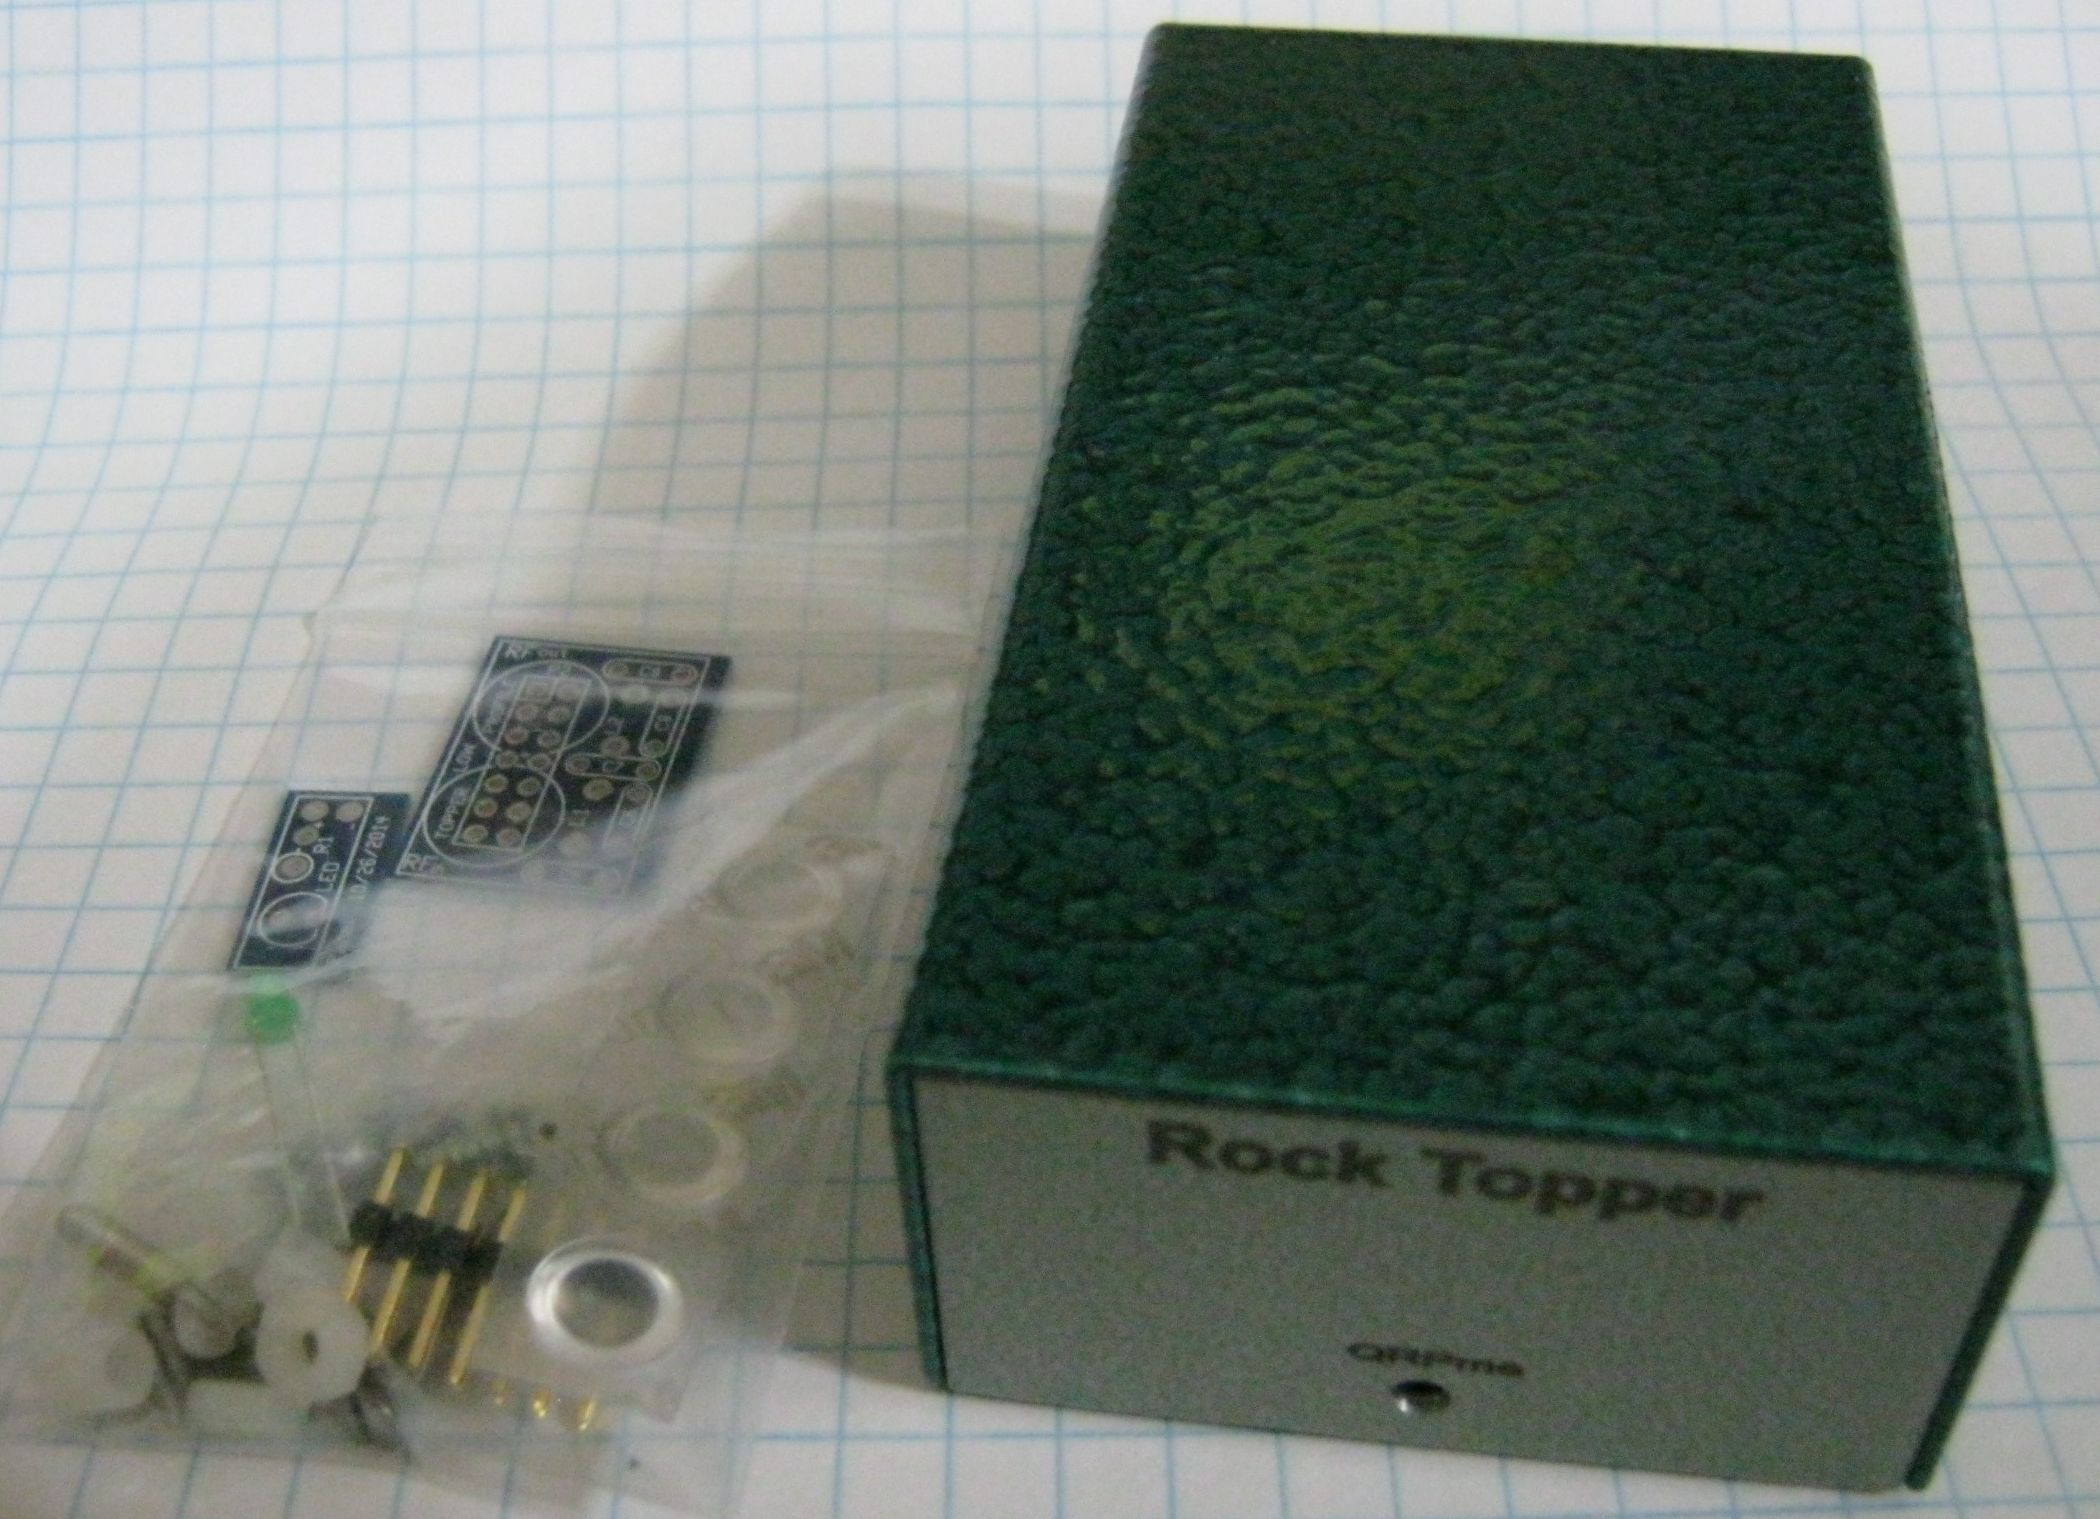 Picture of TEXAS Topper to Rock-Topper Enclosure Upgrade kit